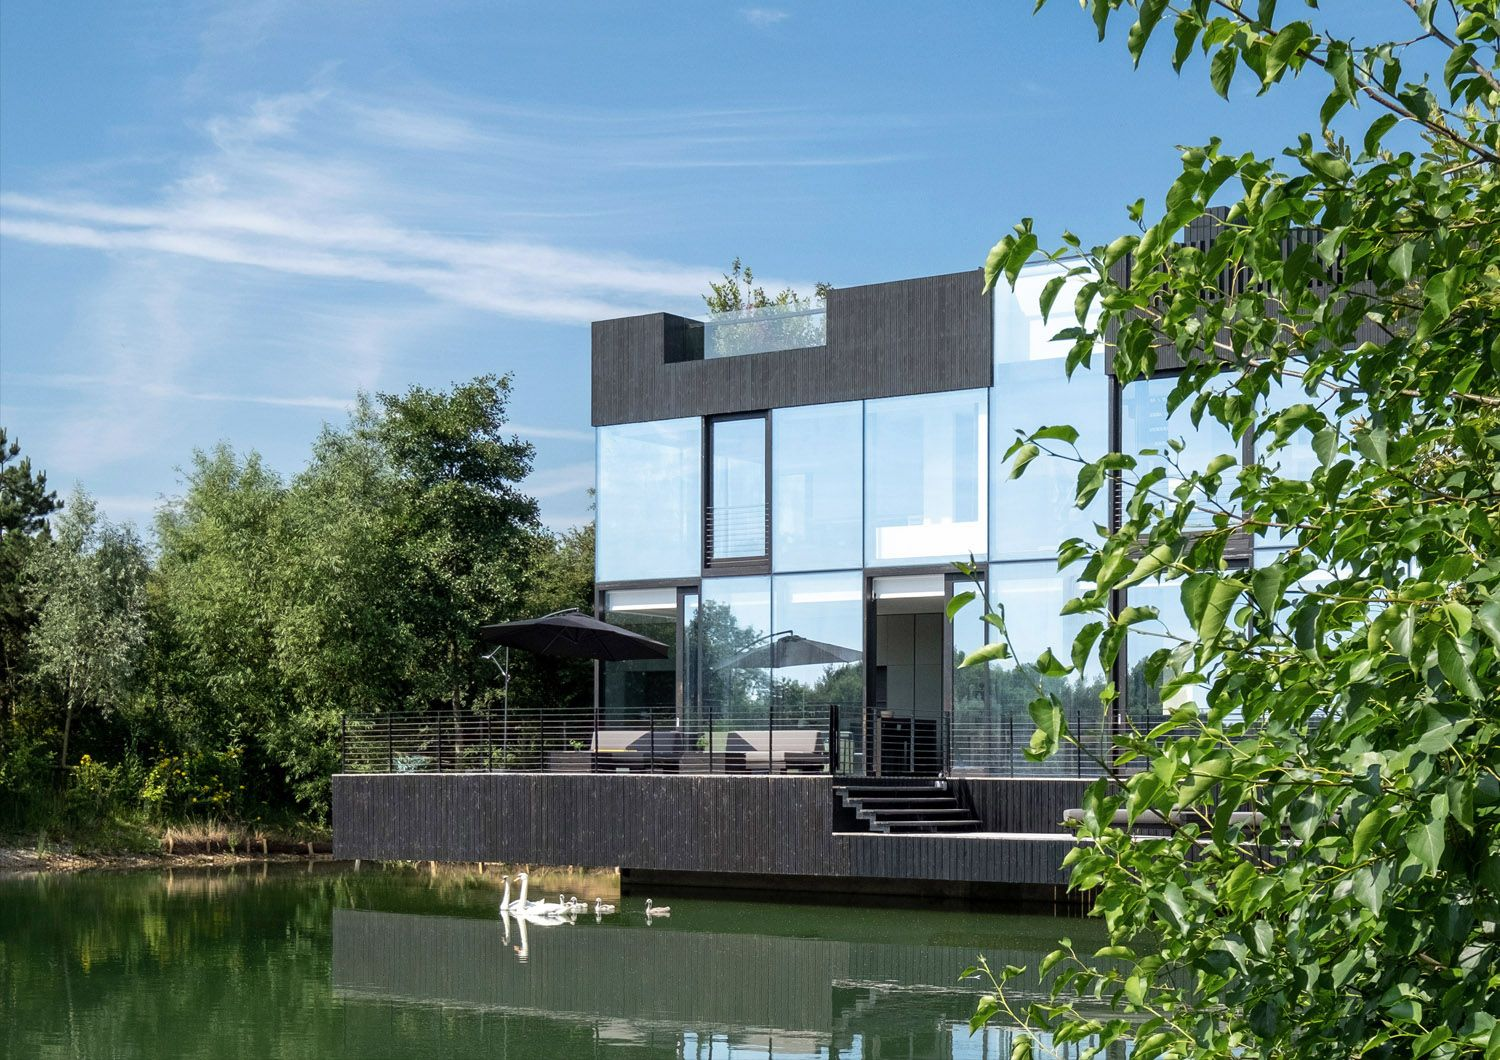 Glass Villa on the lake Lechlade, United Kingdom | Blue sky ...